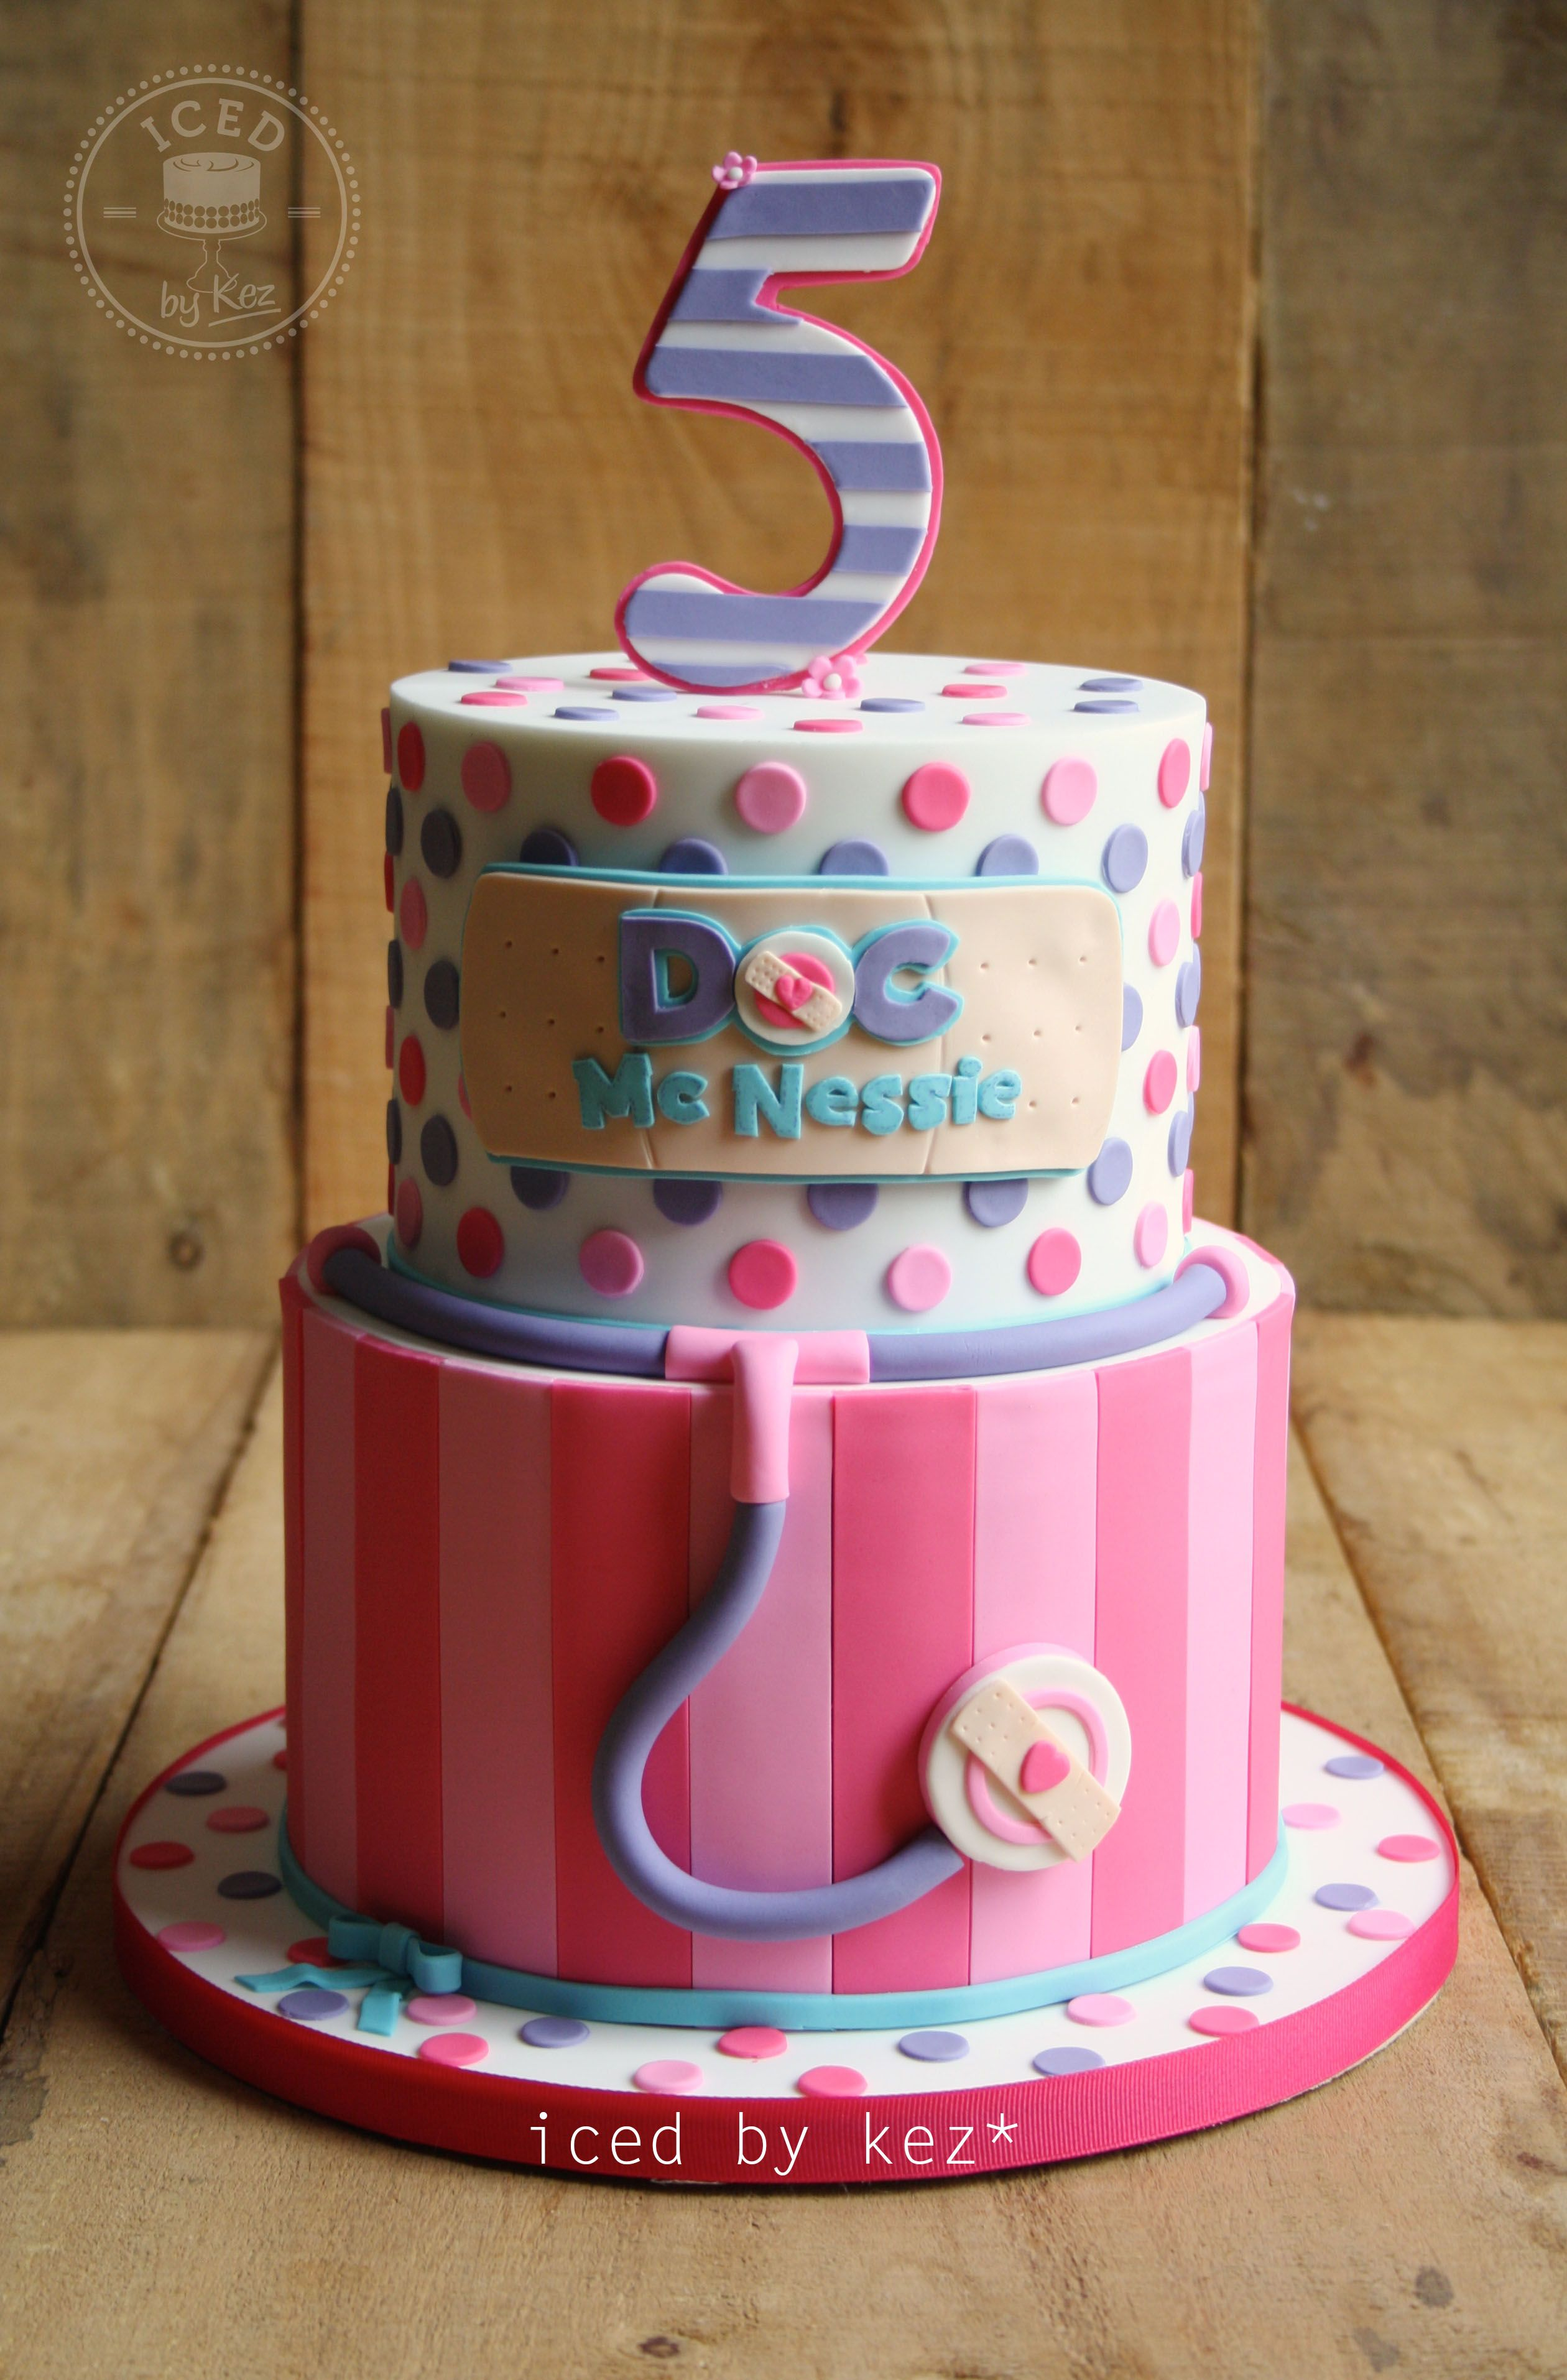 Peachy Doc Mcstuffins Themed Cake For A 5Th Birthday Iced By Kez Birthday Cards Printable Nowaargucafe Filternl